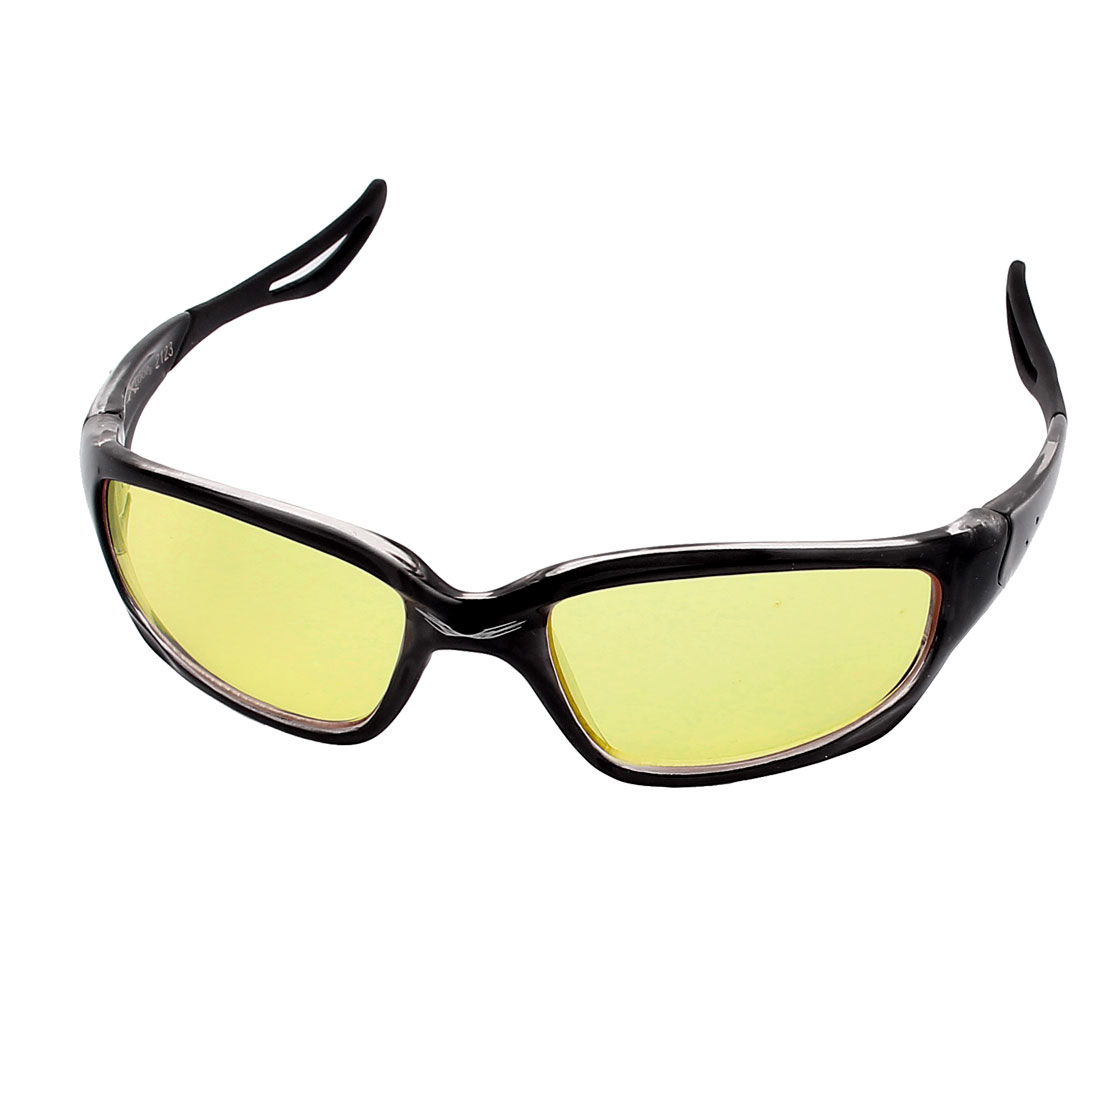 Mens Outdoor Driving Sunglasses Eye Protector Glasses Eyewear Black Green